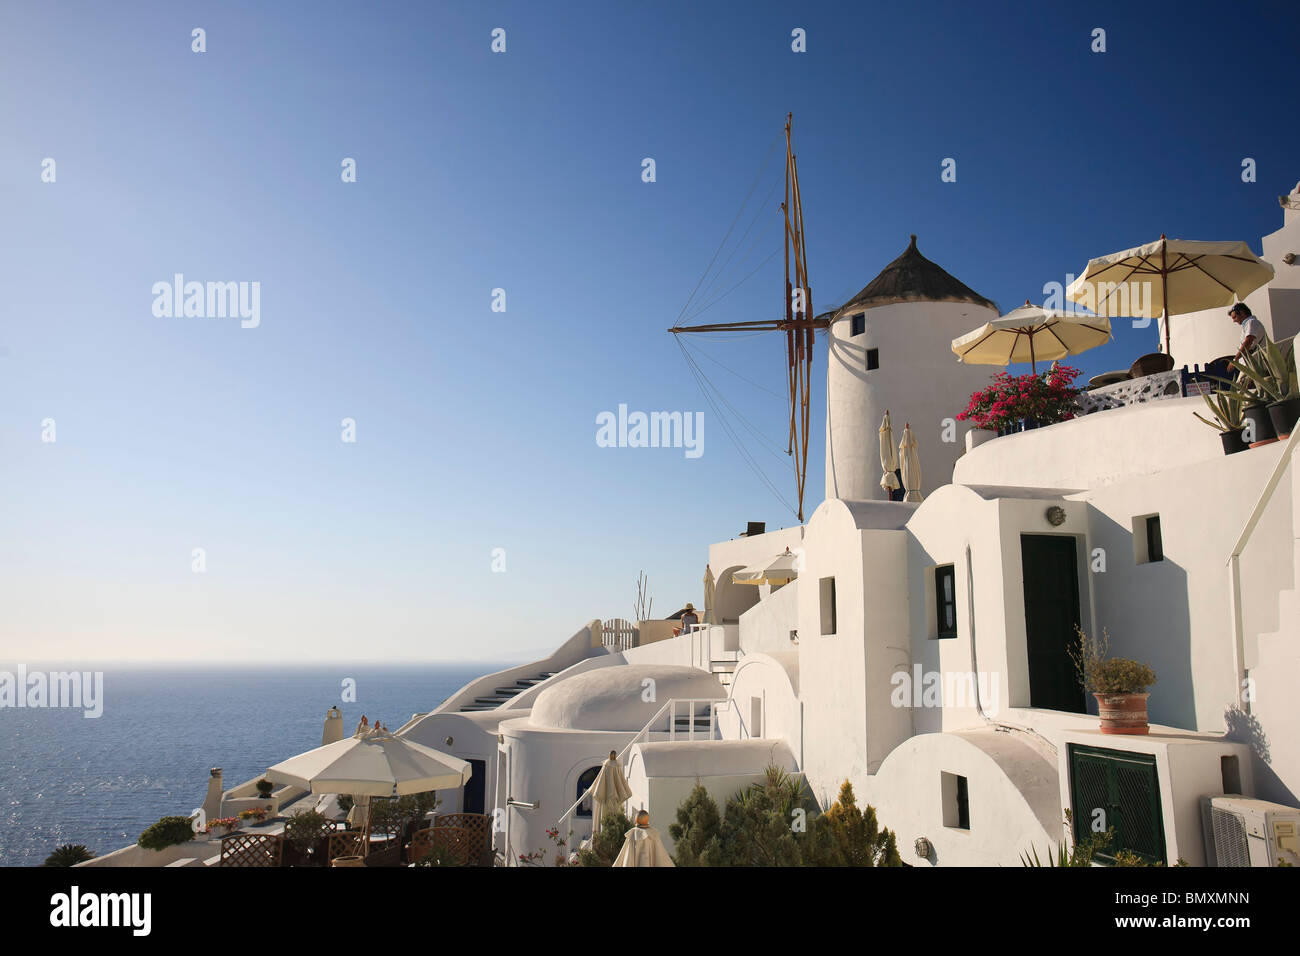 Greece, Cyclades, Santorini, Oia Town, Boutique Hotel - Stock Image